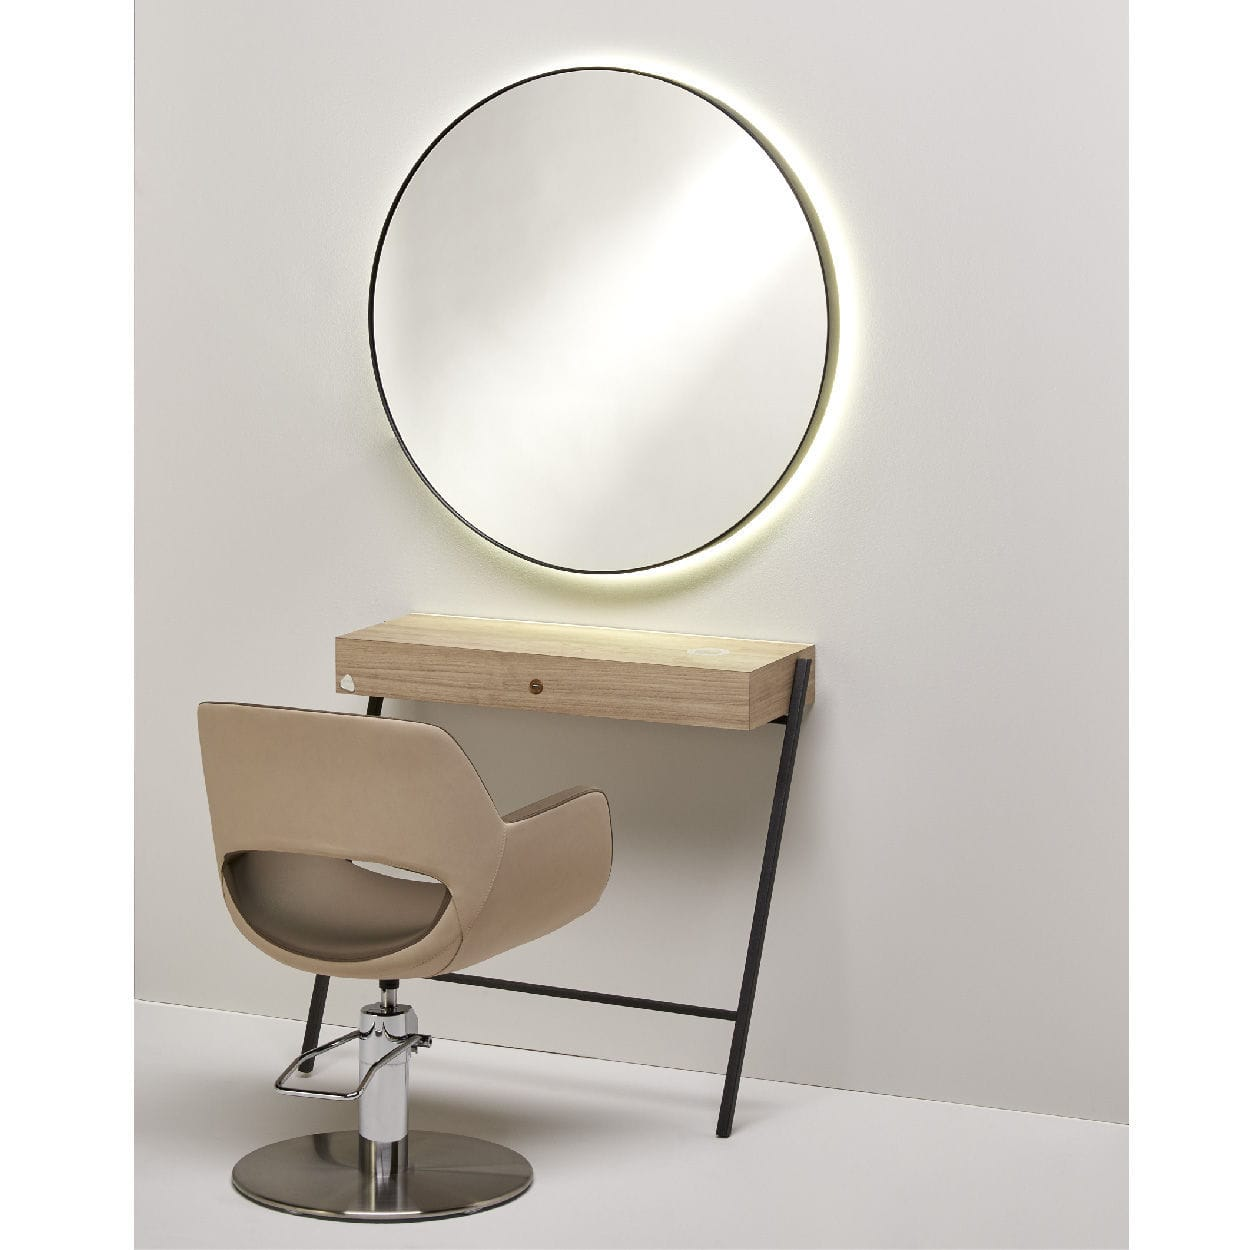 Contemporary Dressing Table / Wooden / Metal / Wall Mounted   BEAUTY SMART